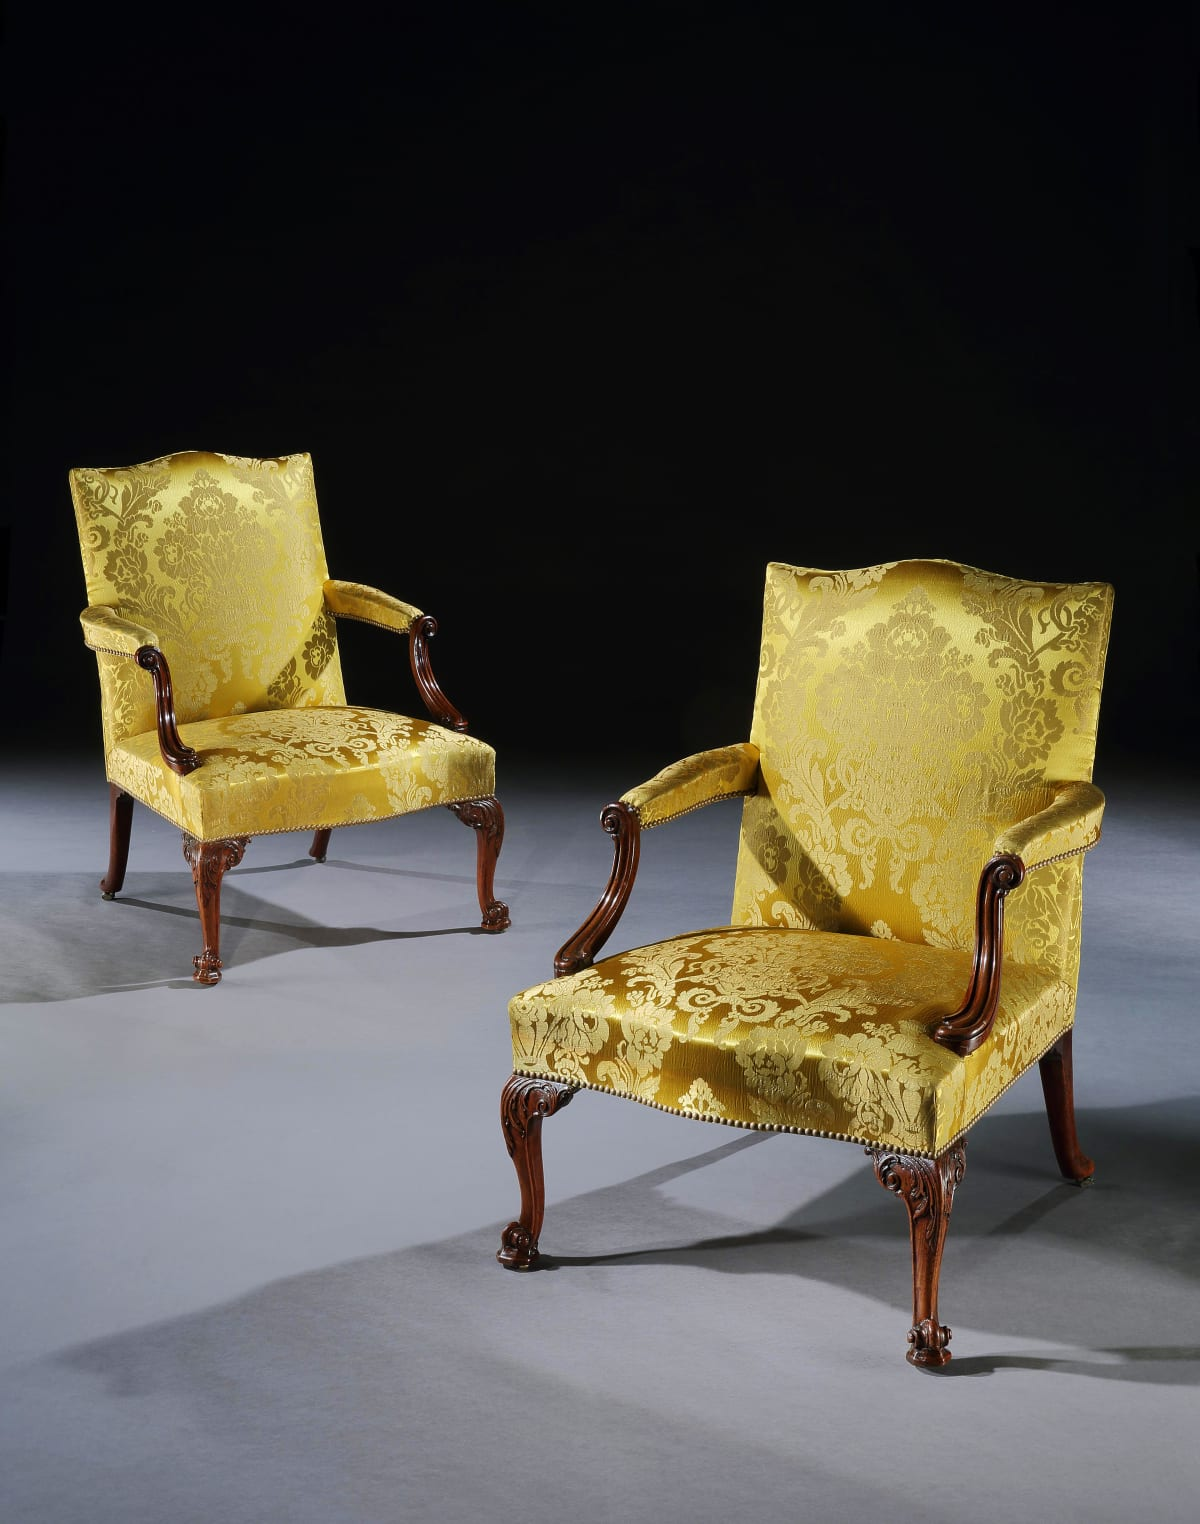 A PAIR OF GEORGE III GAINSBOROUGH OPEN ARMCHAIRS, ENGLISH, CIRCA 1765